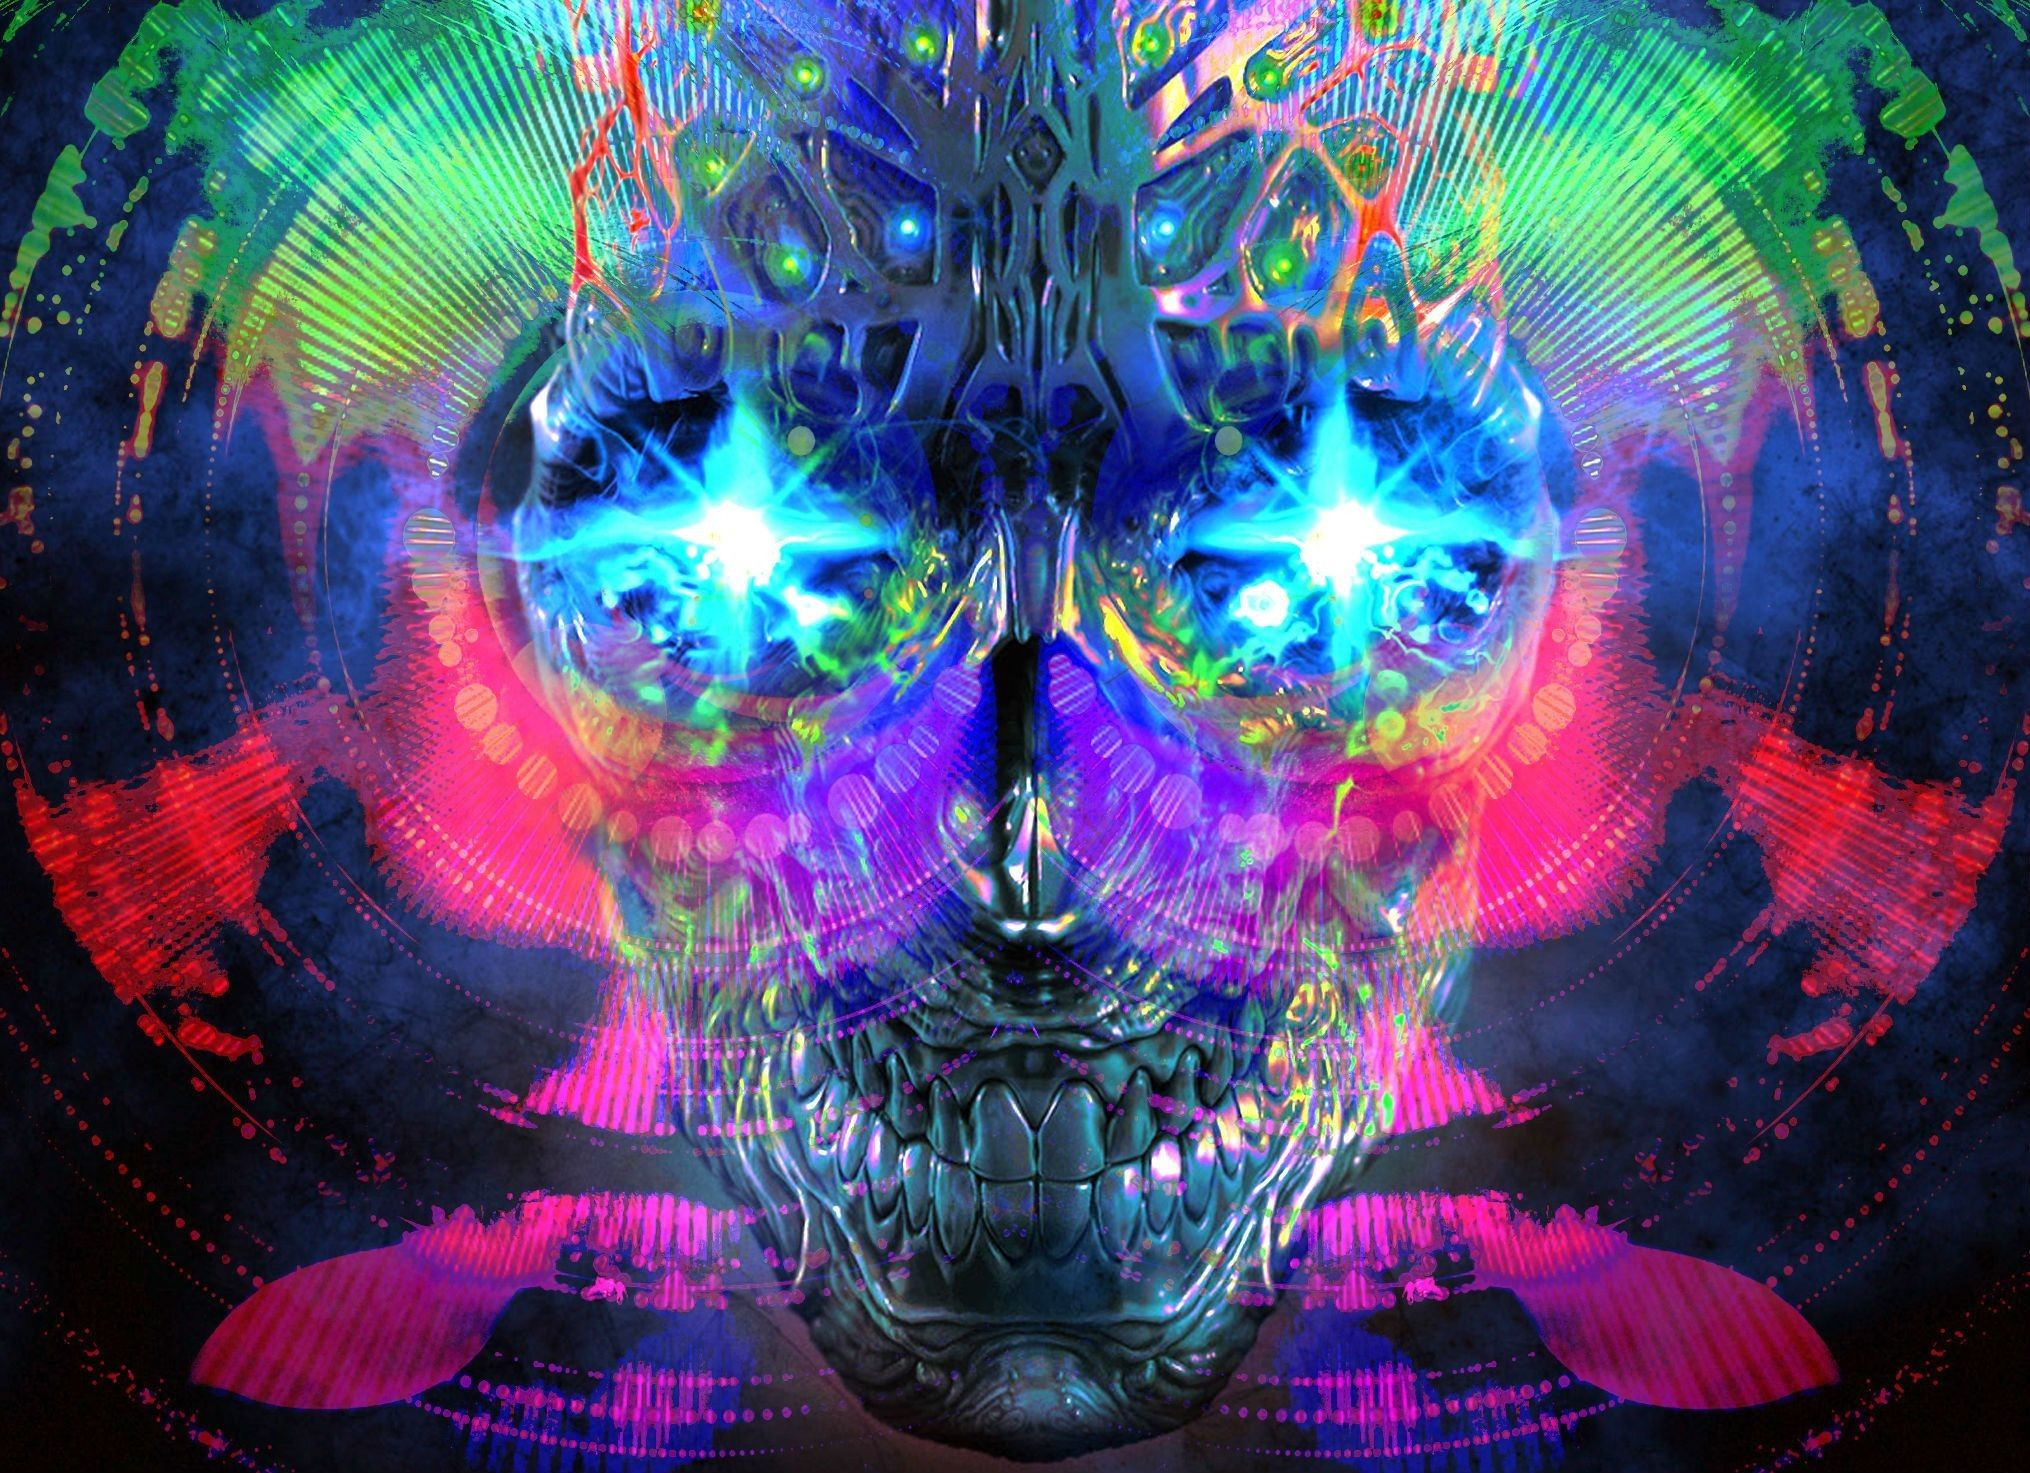 Res 2030x1473 Trippy High Def Desktop From Psychedelic Category Psychedelic Wallpaper High Definition Psychedelic Art Art Skull Wallpaper